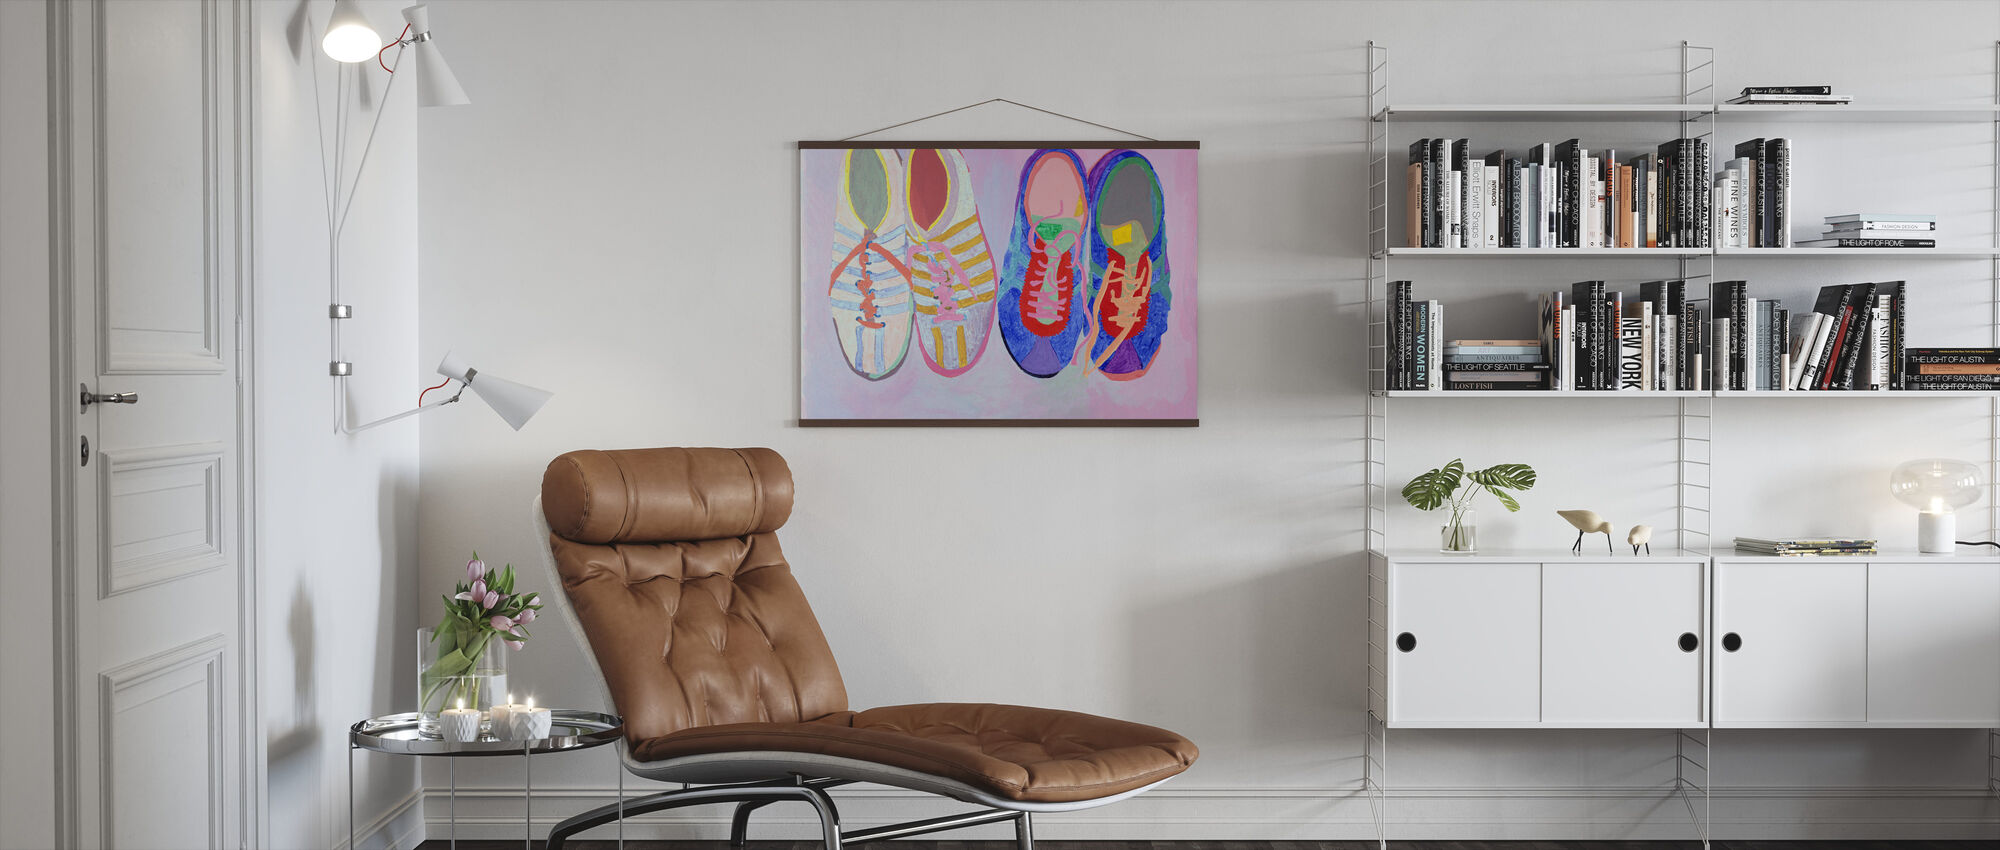 Shoe Series Ten - Marilee Whitehouse-Holm - Poster - Living Room